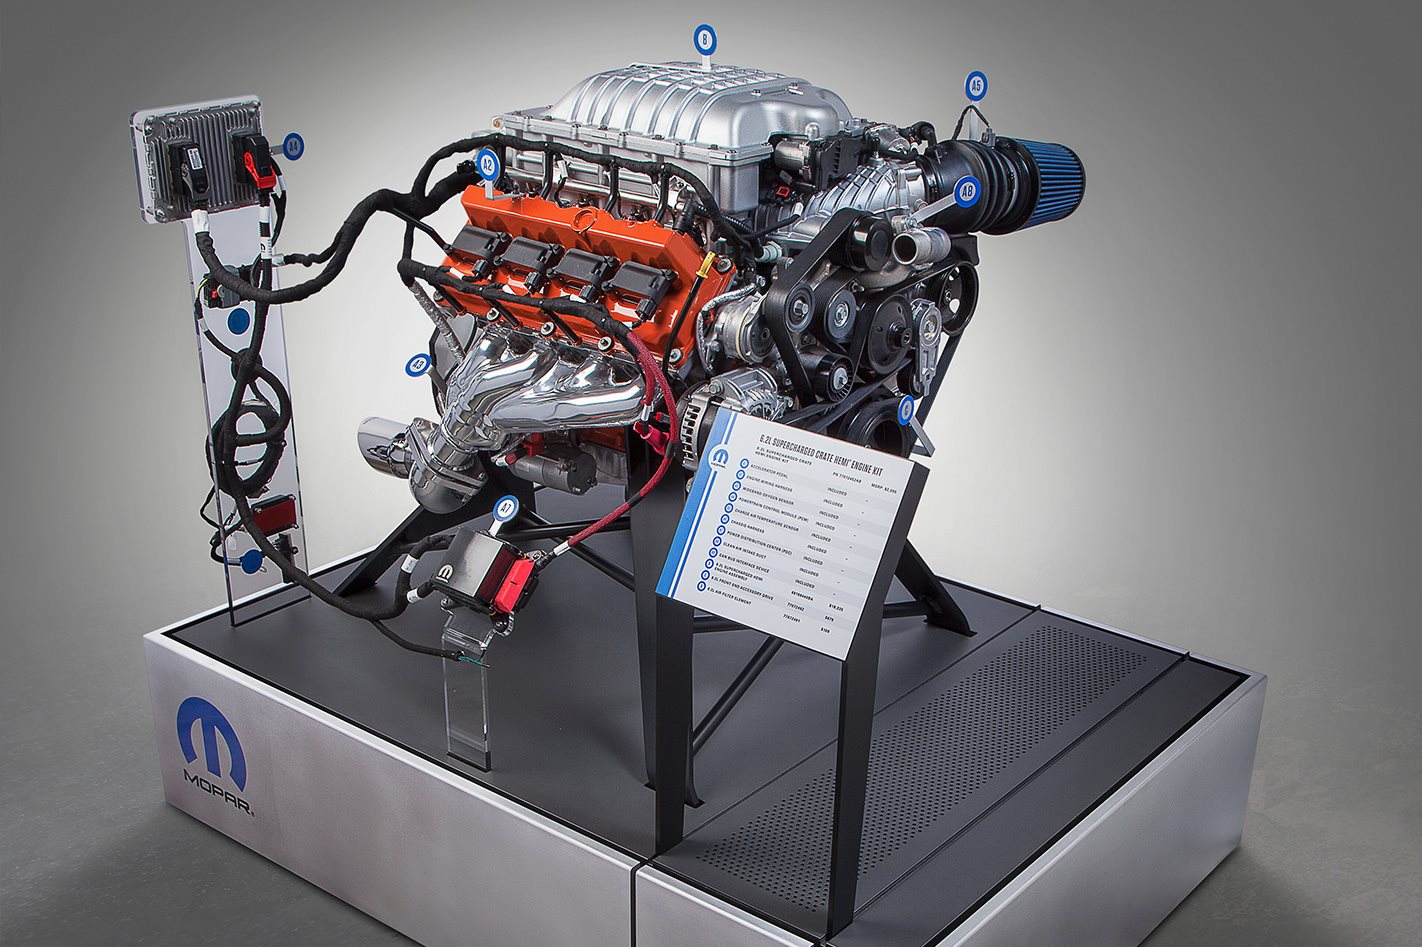 Mopar Hemi 6.2L Crate engine